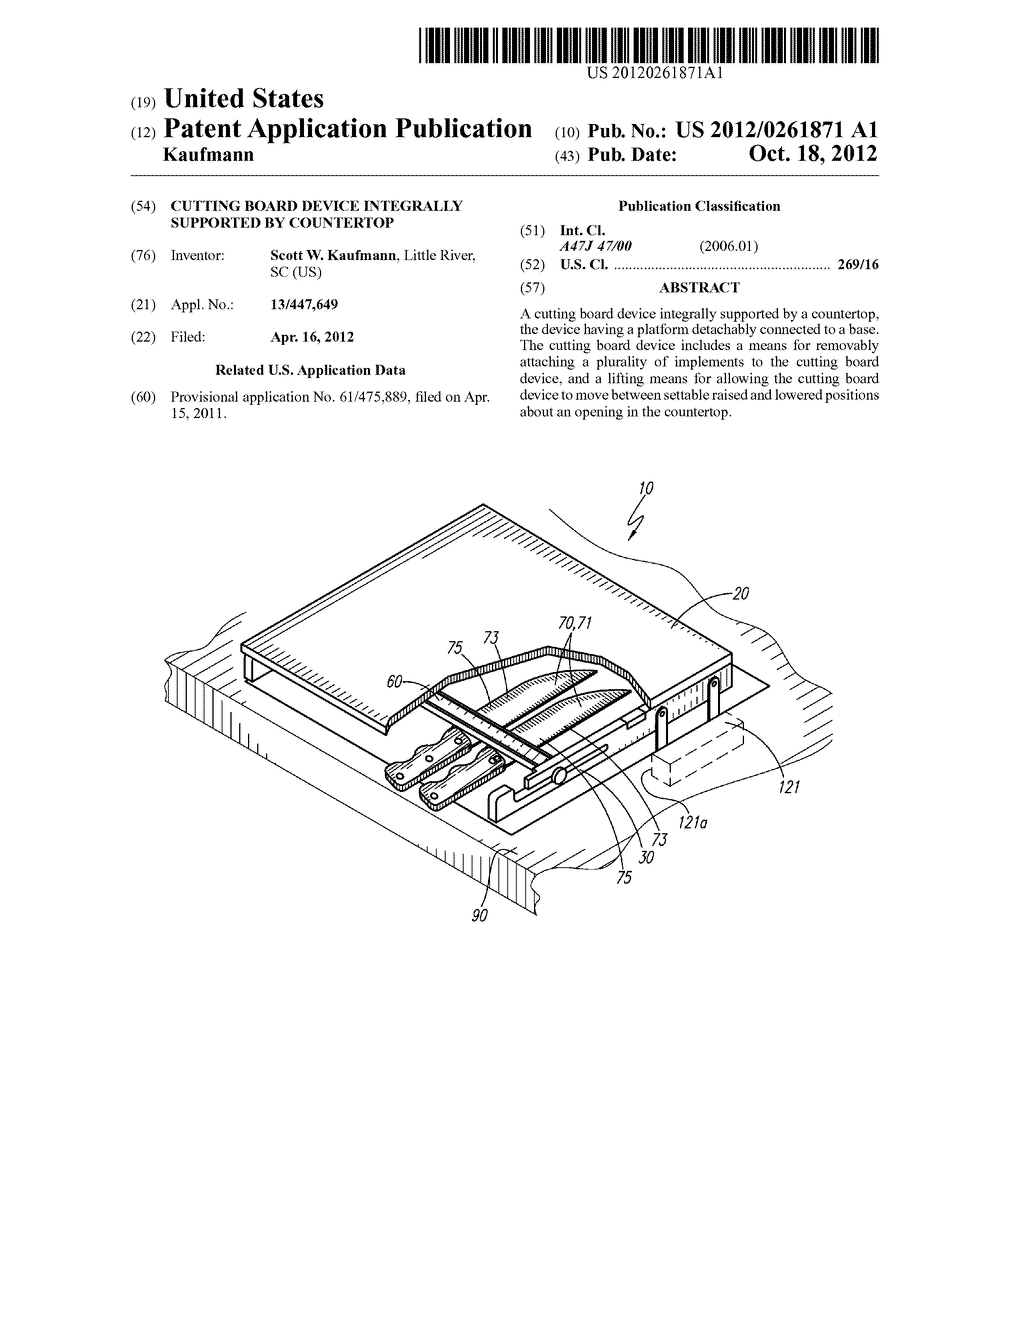 Cutting Board Device Integrally Supported By Countertop - diagram, schematic, and image 01